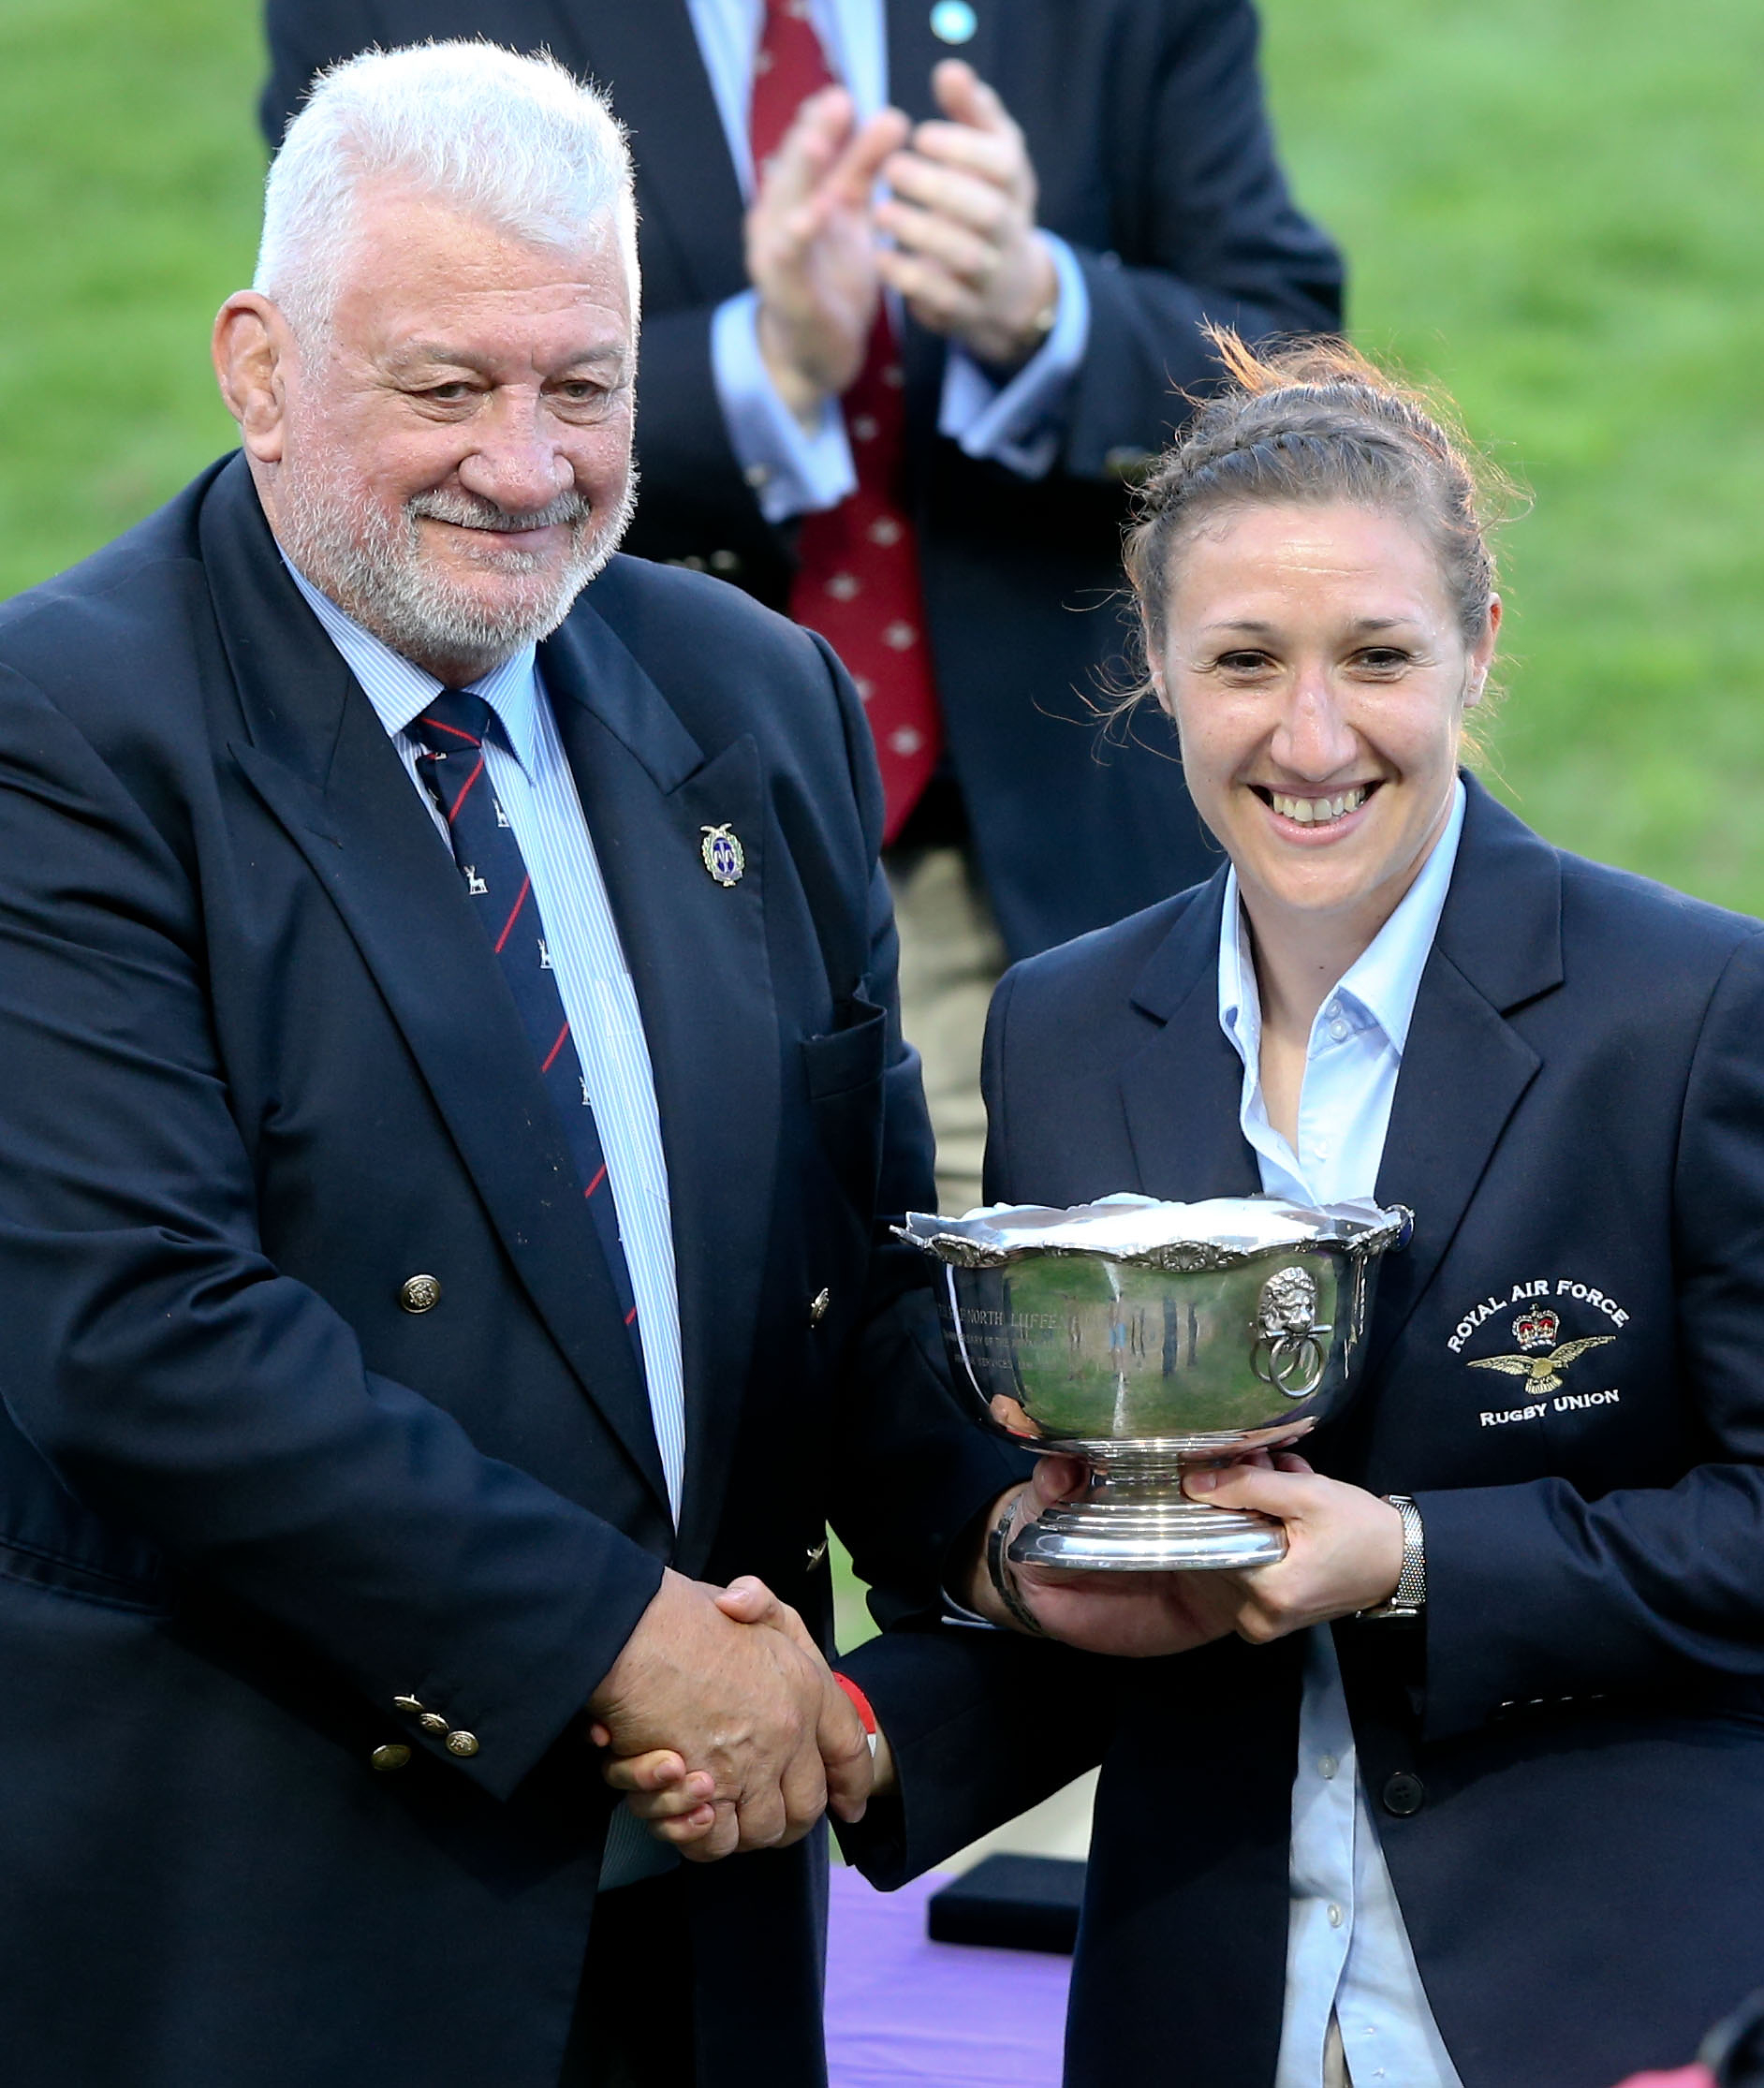 Nigel Rose, left, presents the Molly Rose Trophy to Flight Lieutenant Chrissy Siczowa. Pic Alligin Photograpghy